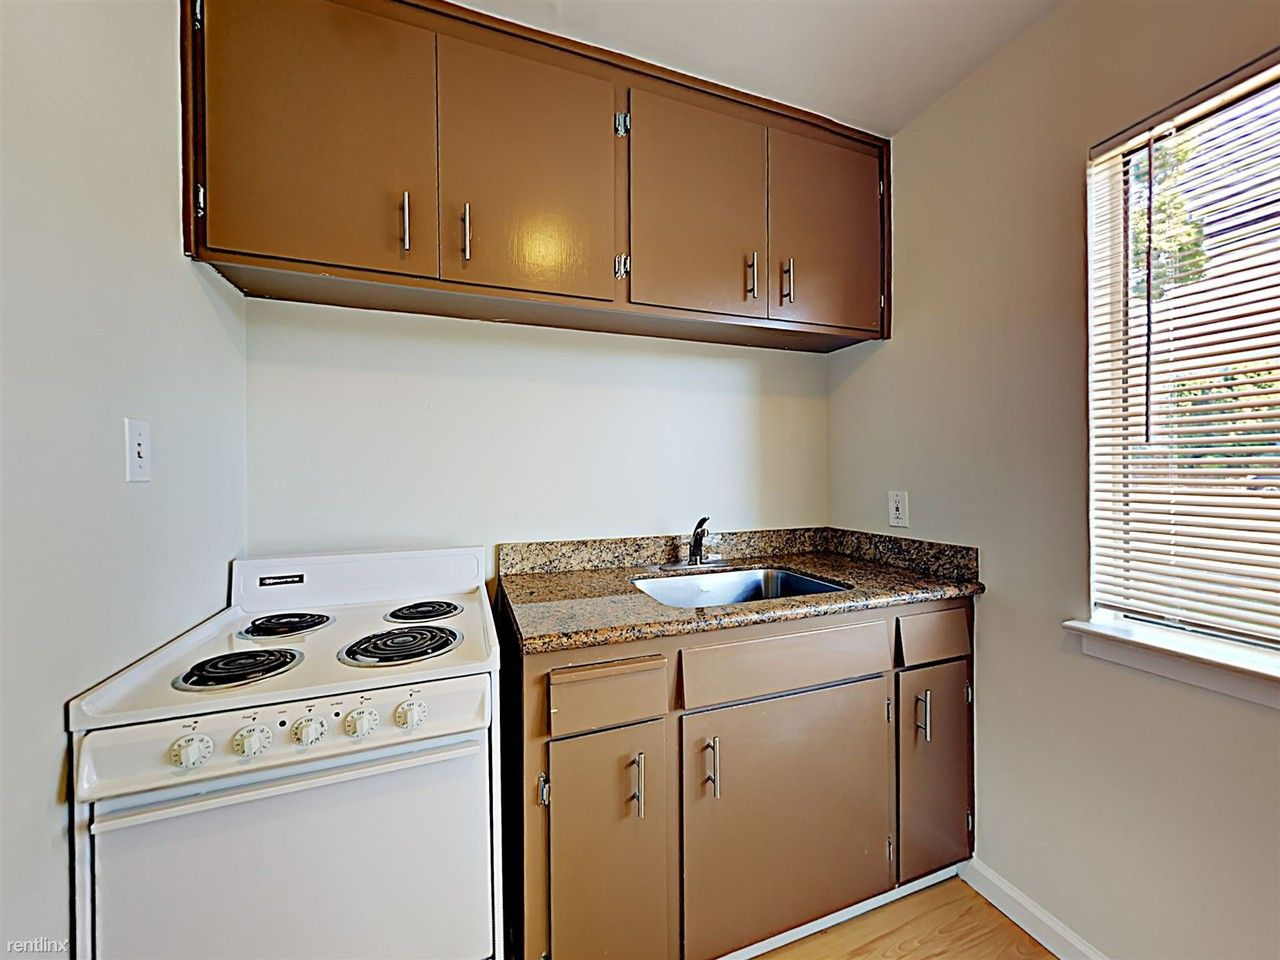 2141 fruitdale ave 3 san jose ca 95128 1 bedroom - San jose 2 bedroom apartments for rent ...